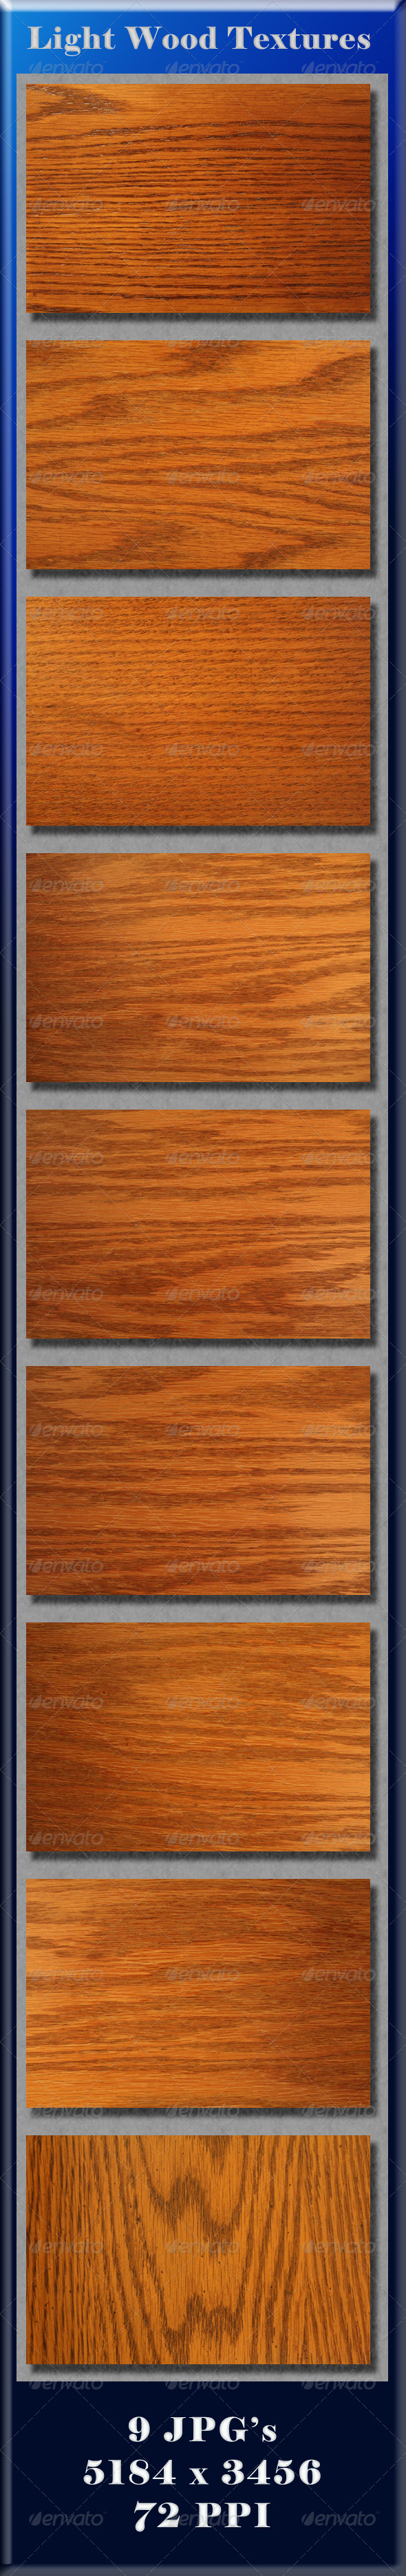 GraphicRiver Light Wood Textures 4131144